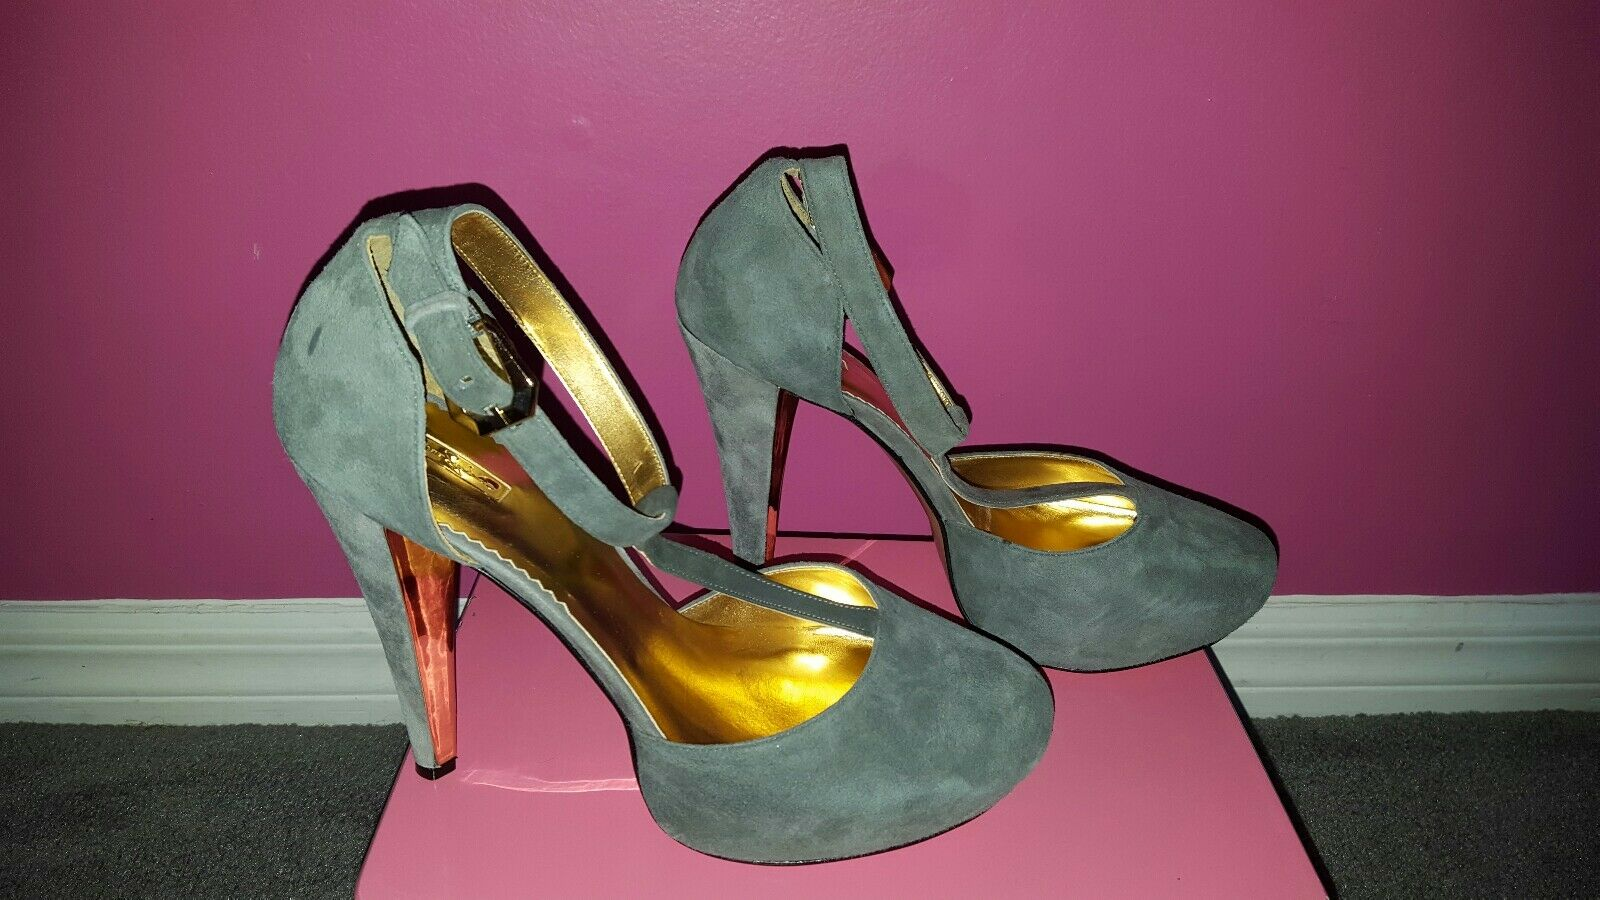 Report Signature Stilletos Guarda T-strap Platform Grau Stilletos Signature sz 10 1a1ced